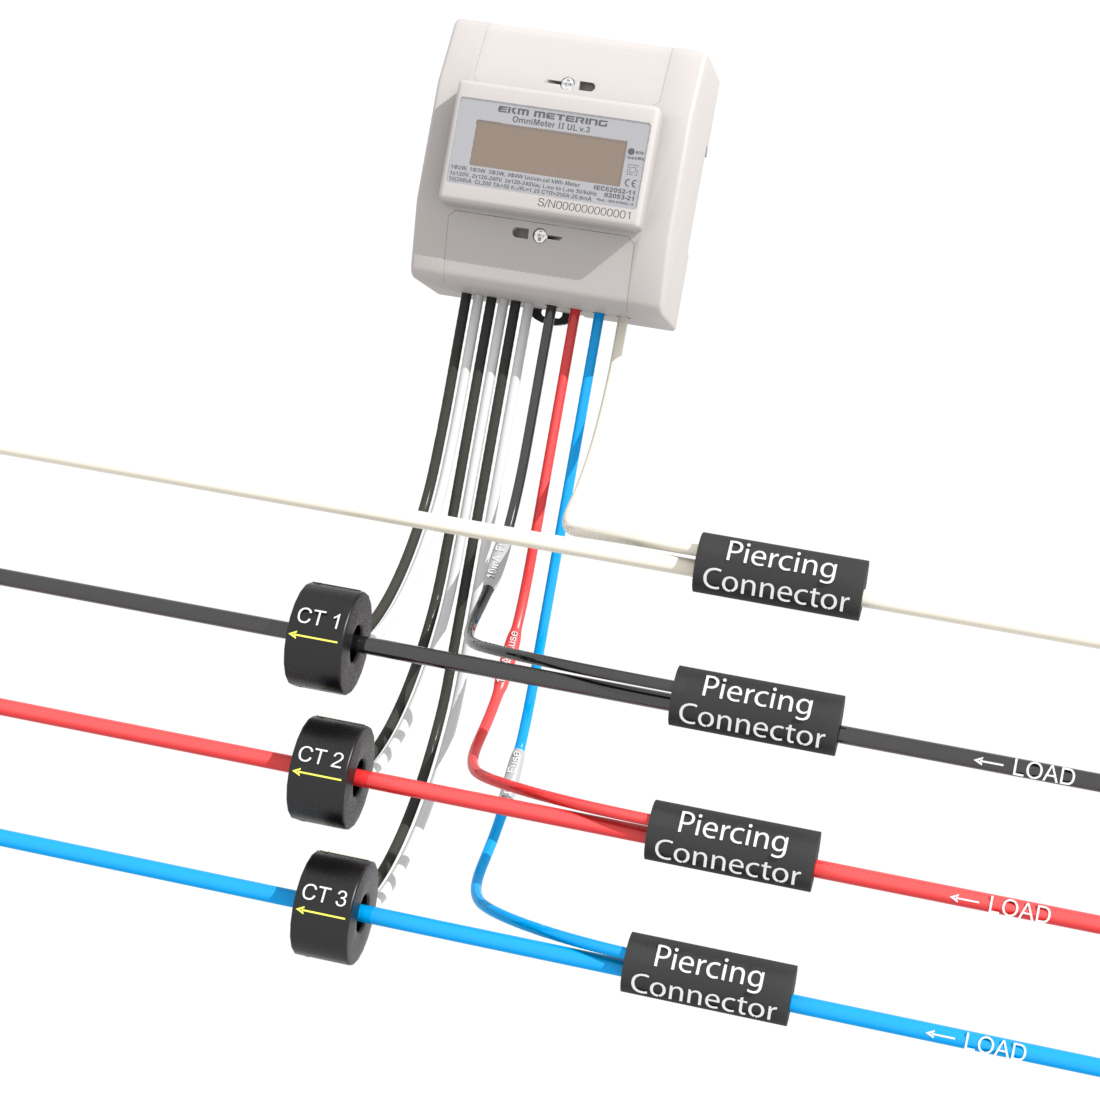 3 phase 4 wire metering up to 480v ekm support desk 480v 3 phase wiring diagram 480v 3 phase wiring [ 1100 x 1100 Pixel ]